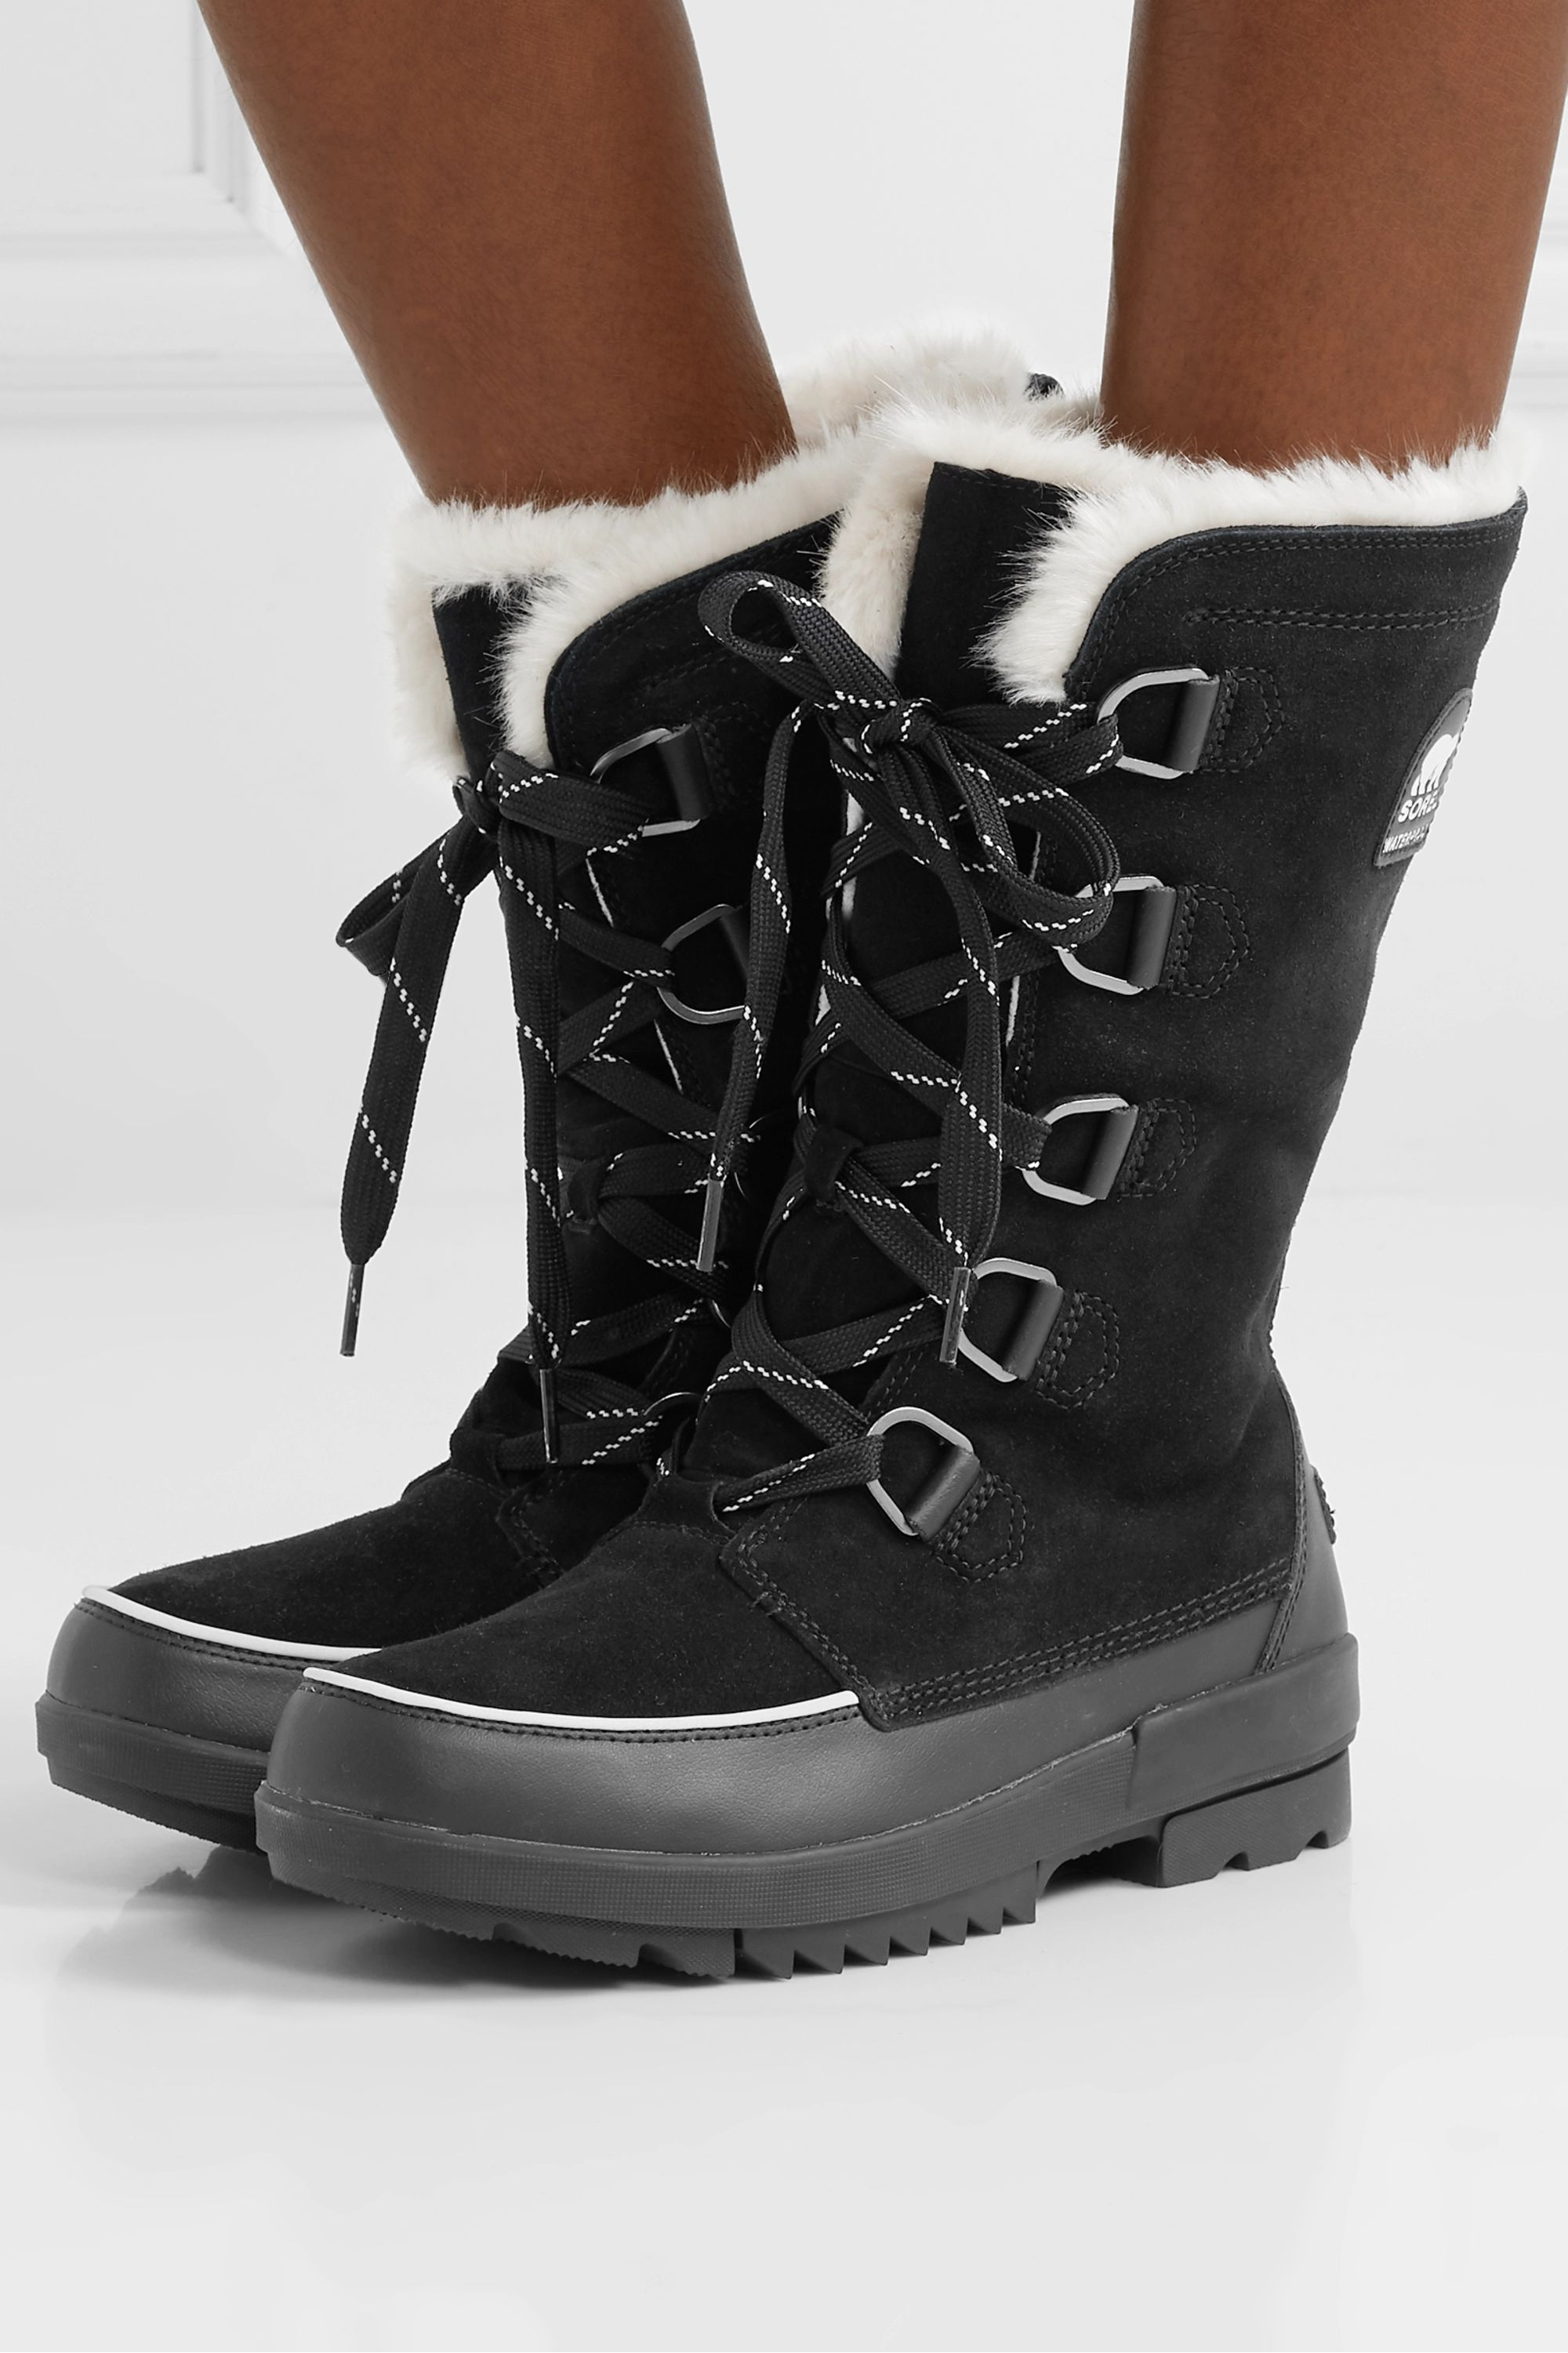 Sorel Torino II faux fur-trimmed waterproof suede and rubber boots